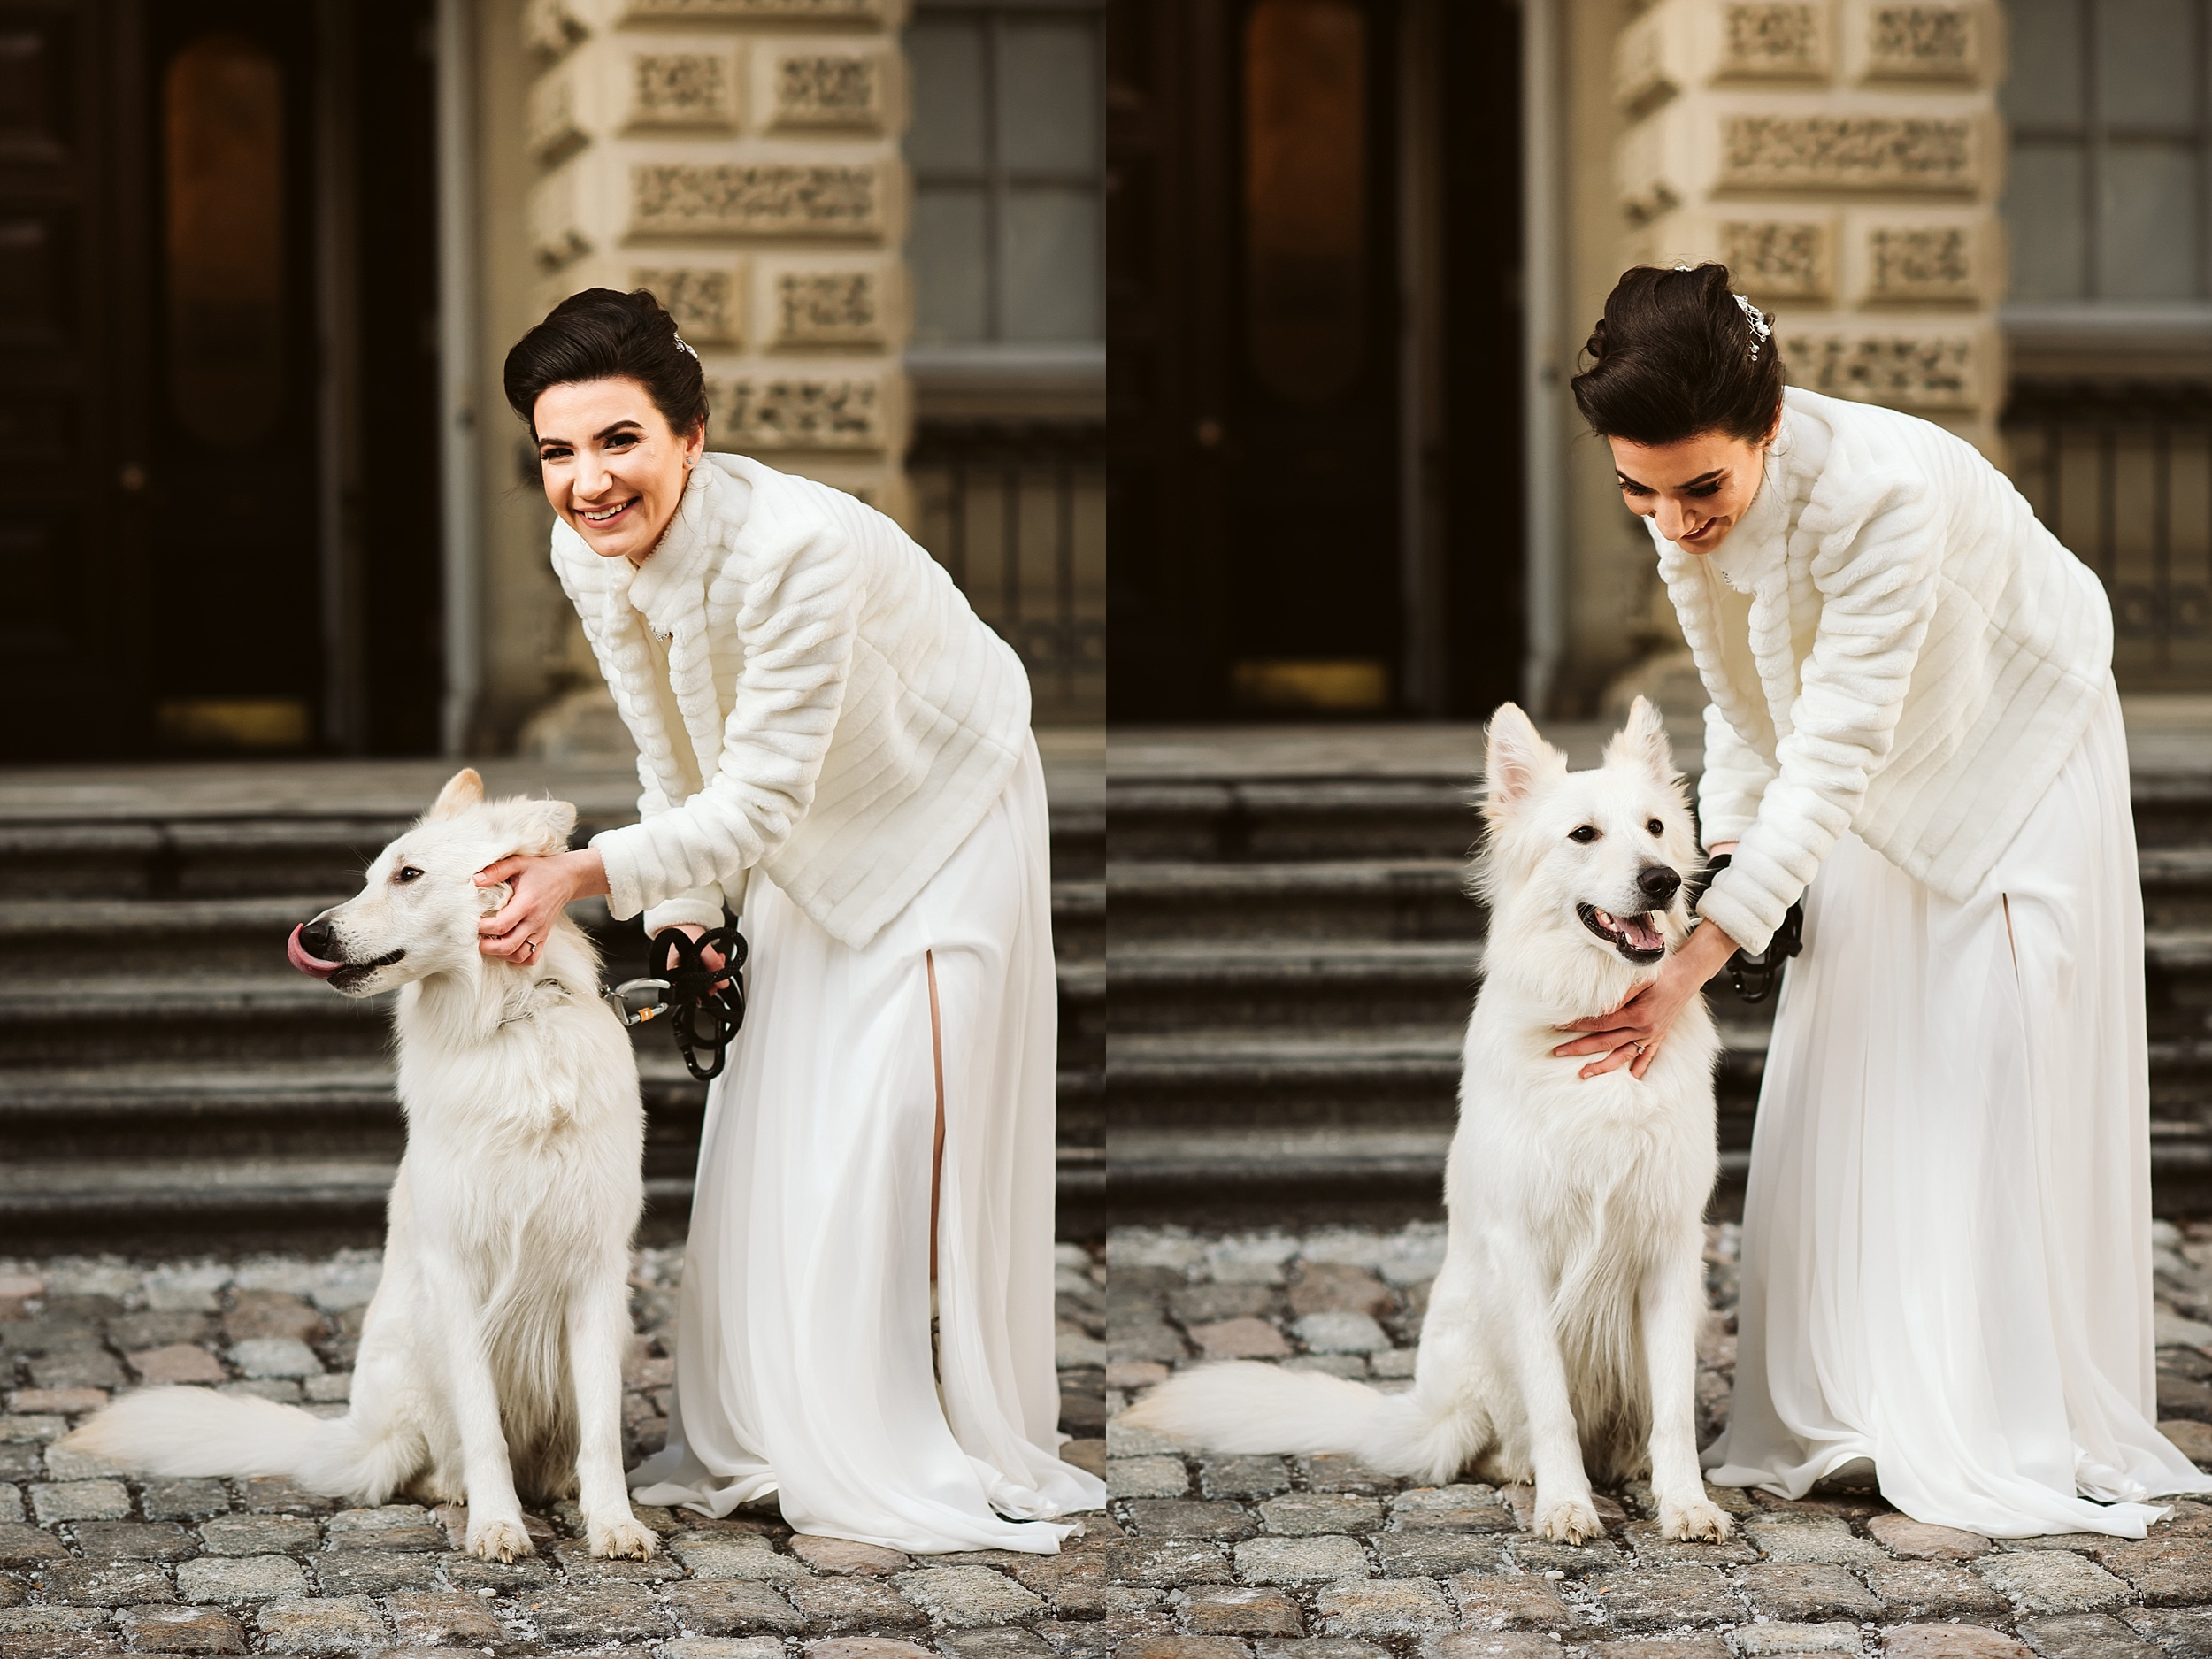 Toronto_City_Hall_Elopement_Wedding_Photographer006.jpg